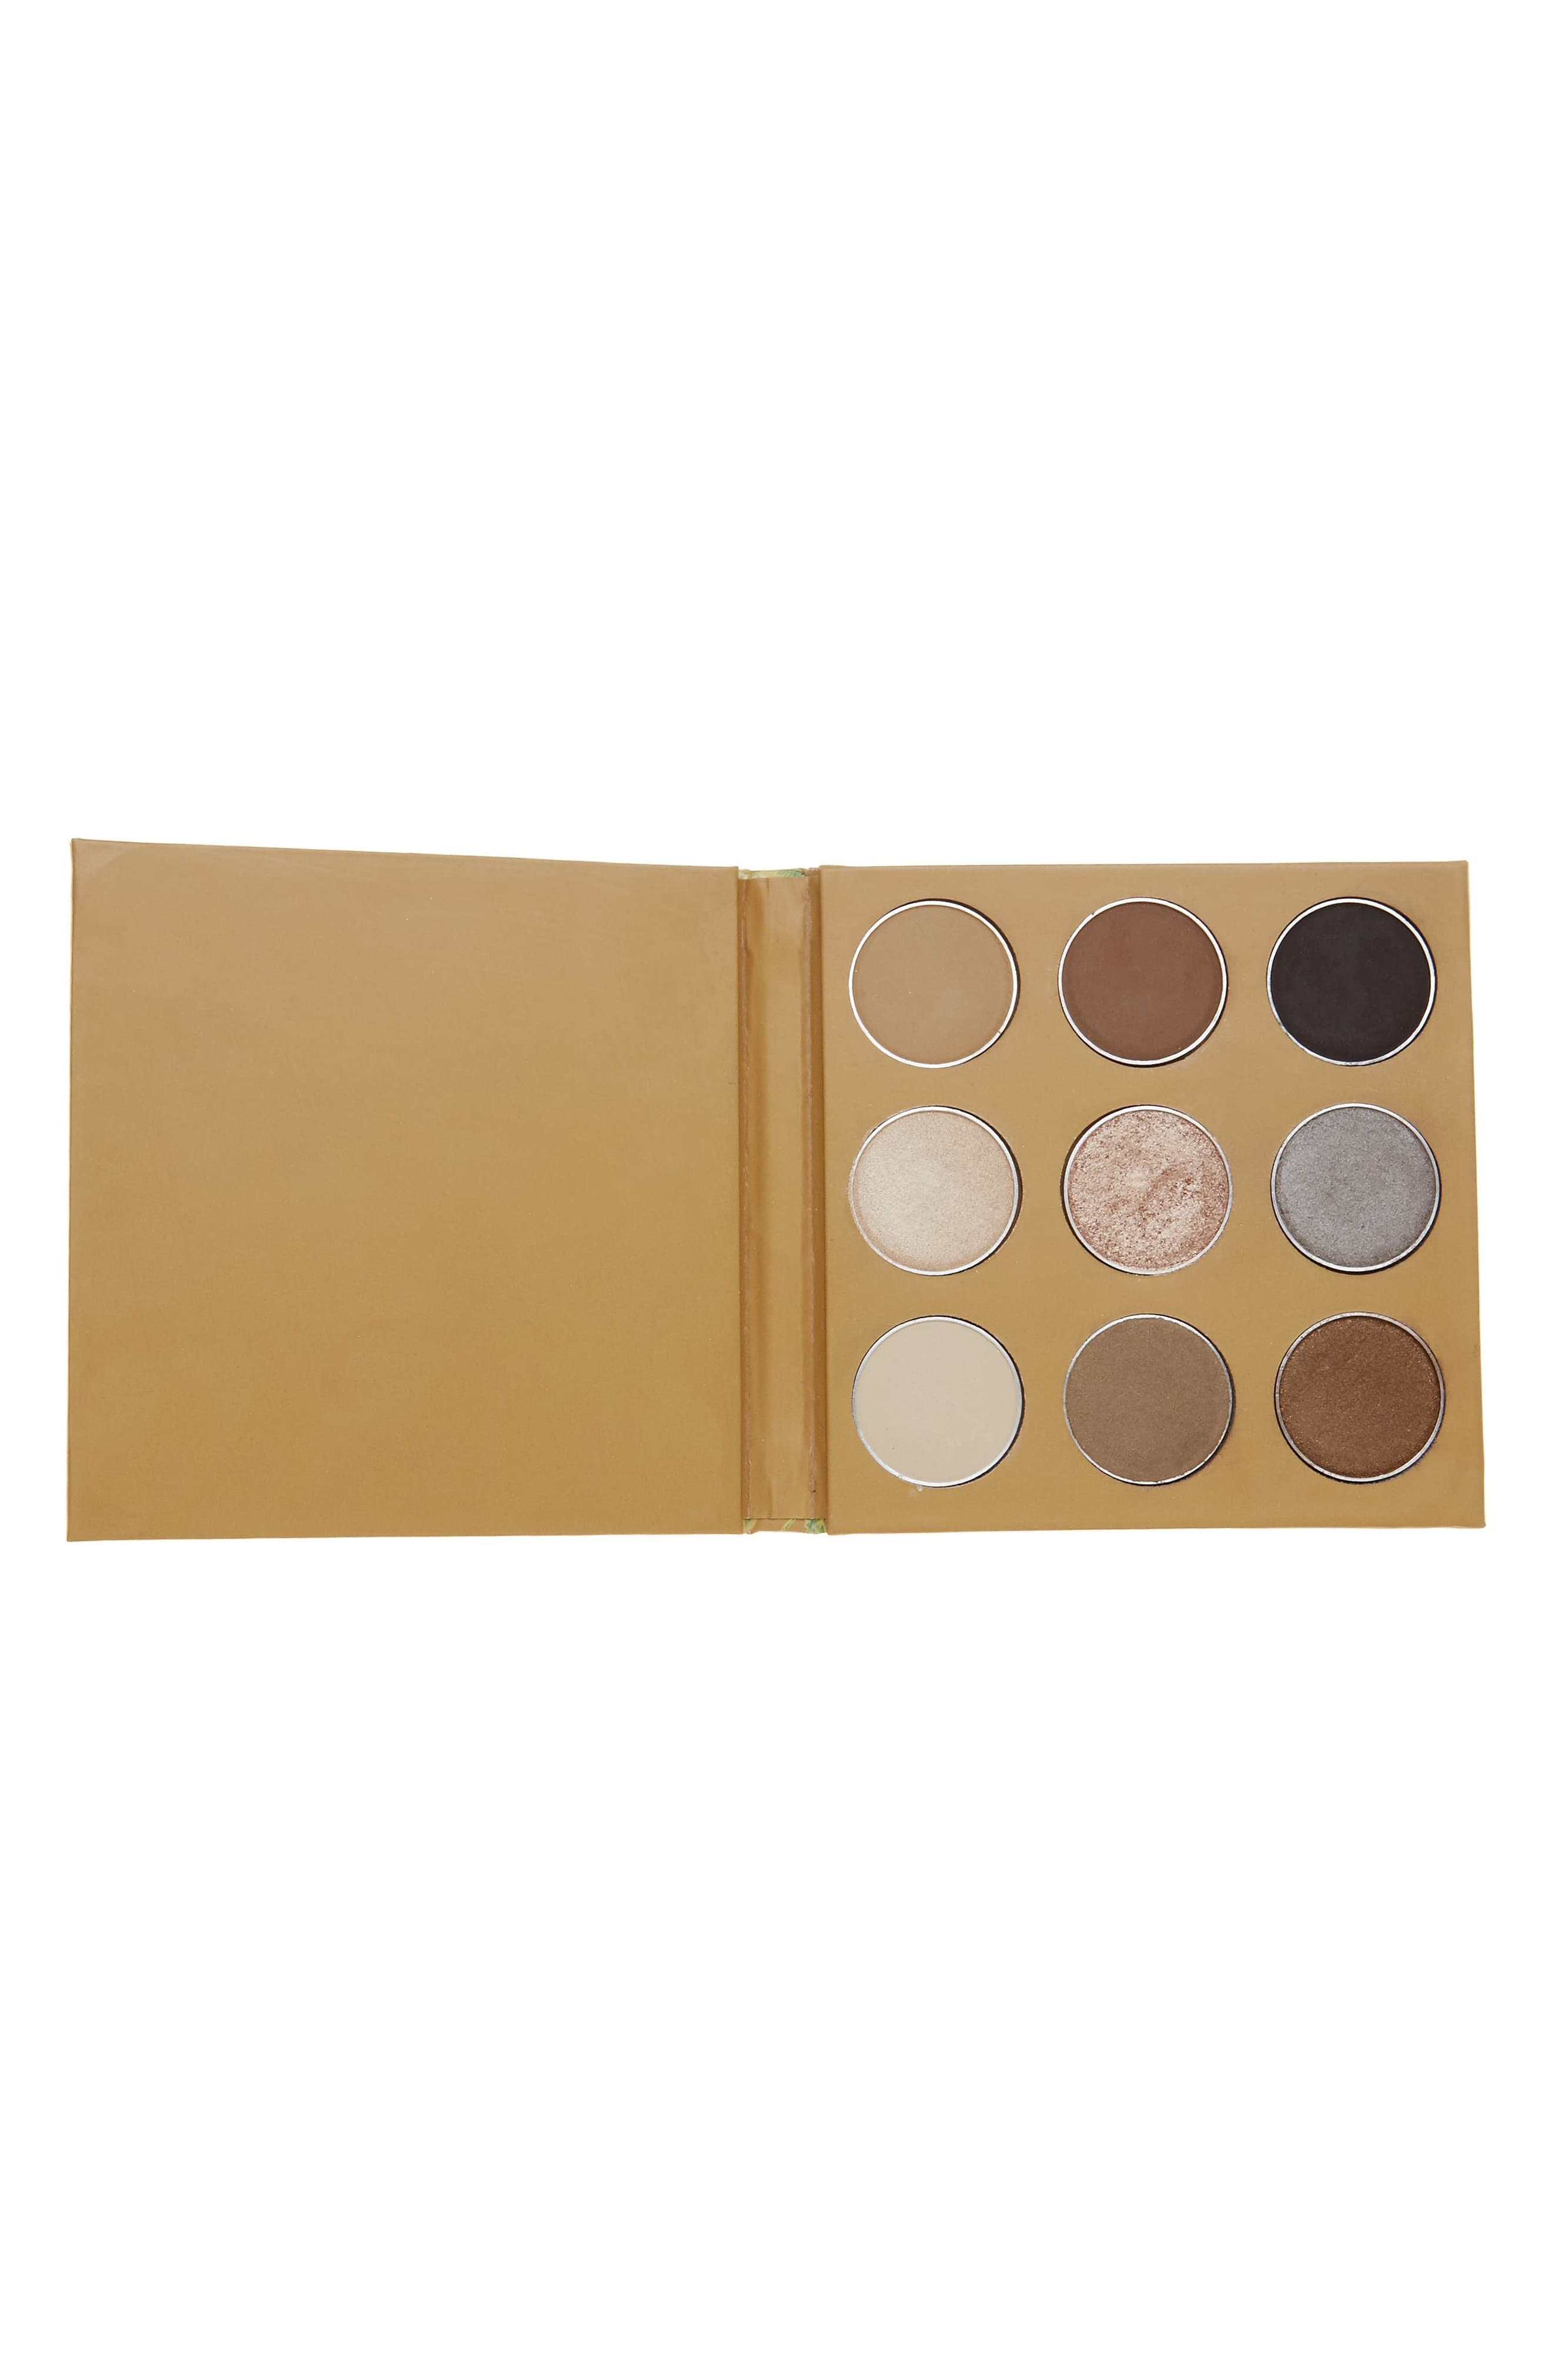 Coffee Eyeshadow Palette,                             Main thumbnail 1, color,                             NO COLOR